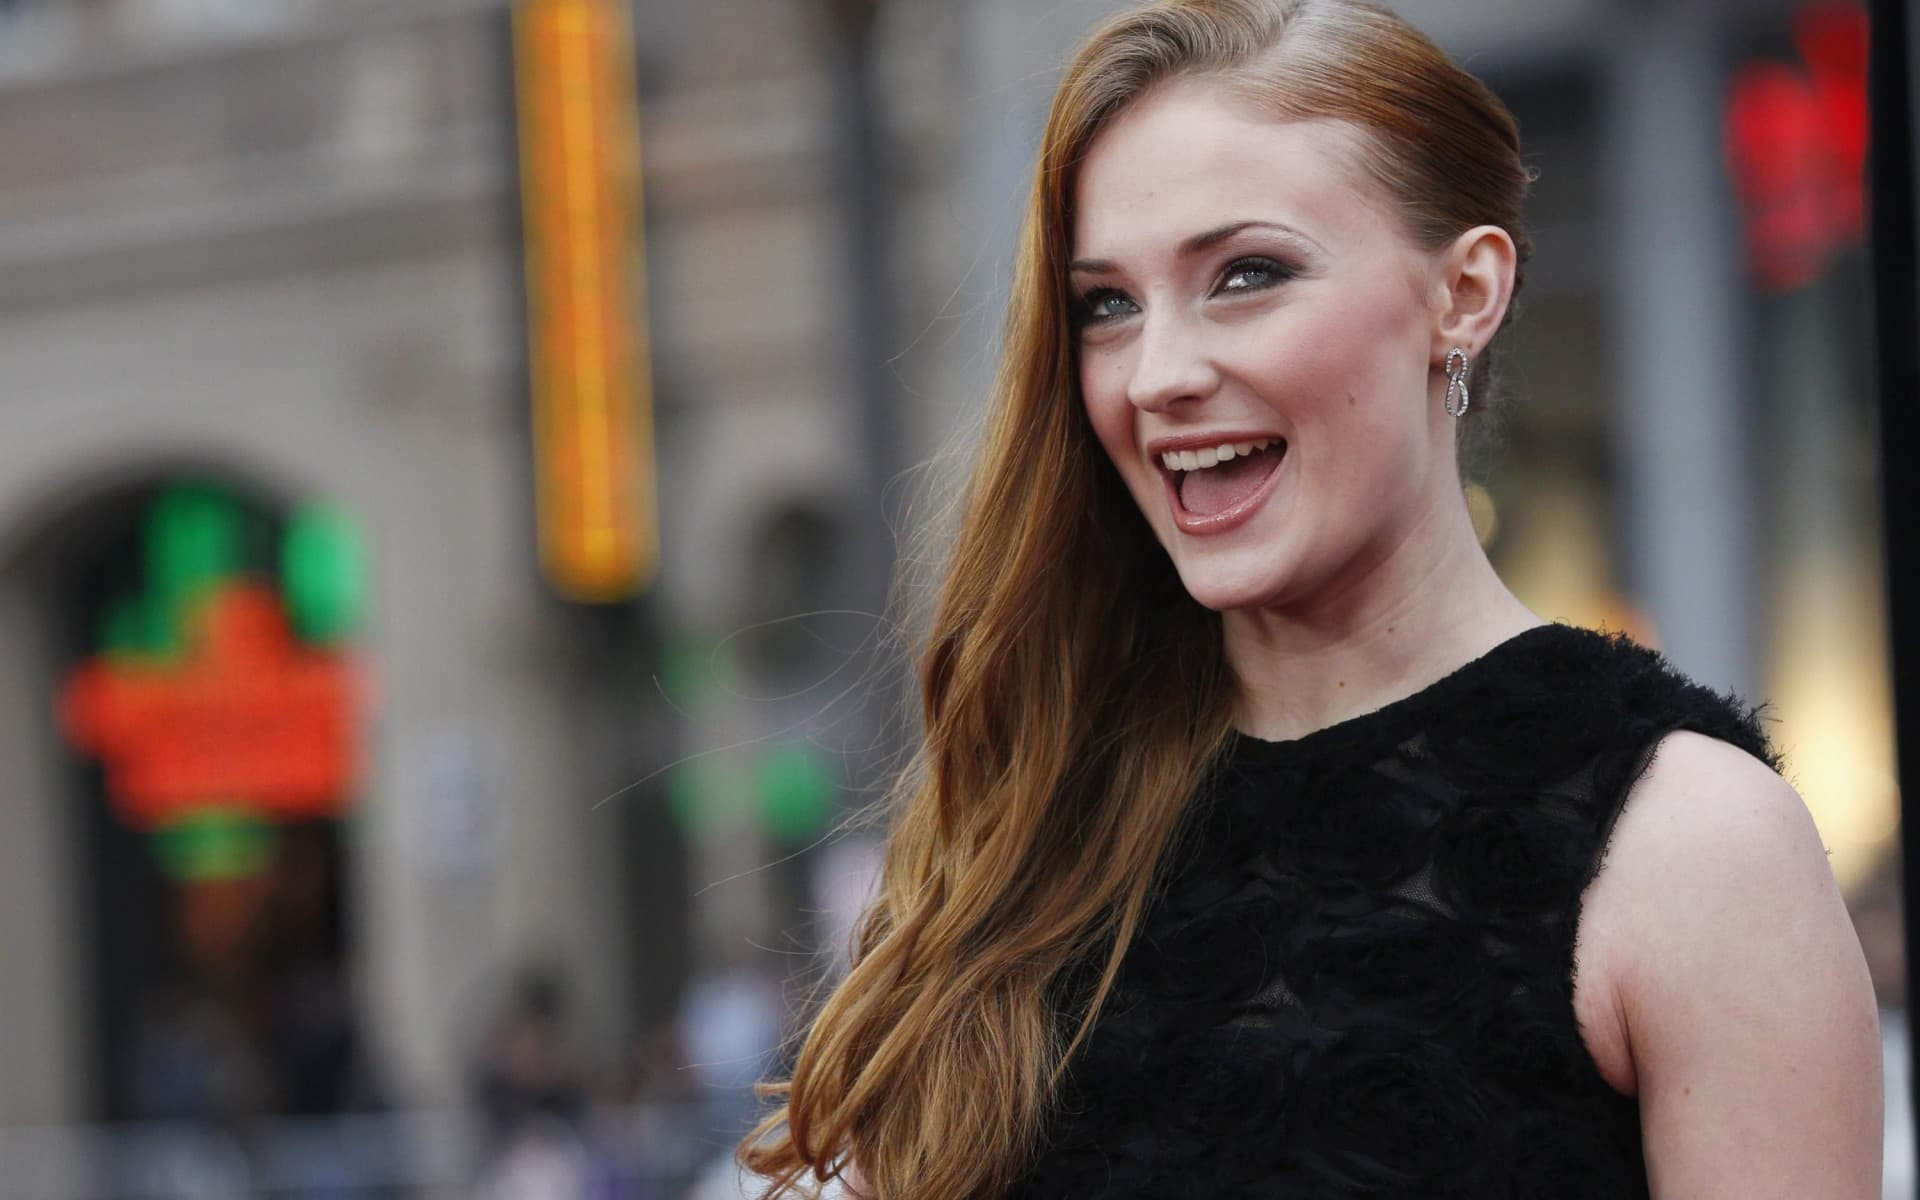 Social Media Helped Alot In Bagging The Role Of Sansa Stark: Sophie Turner